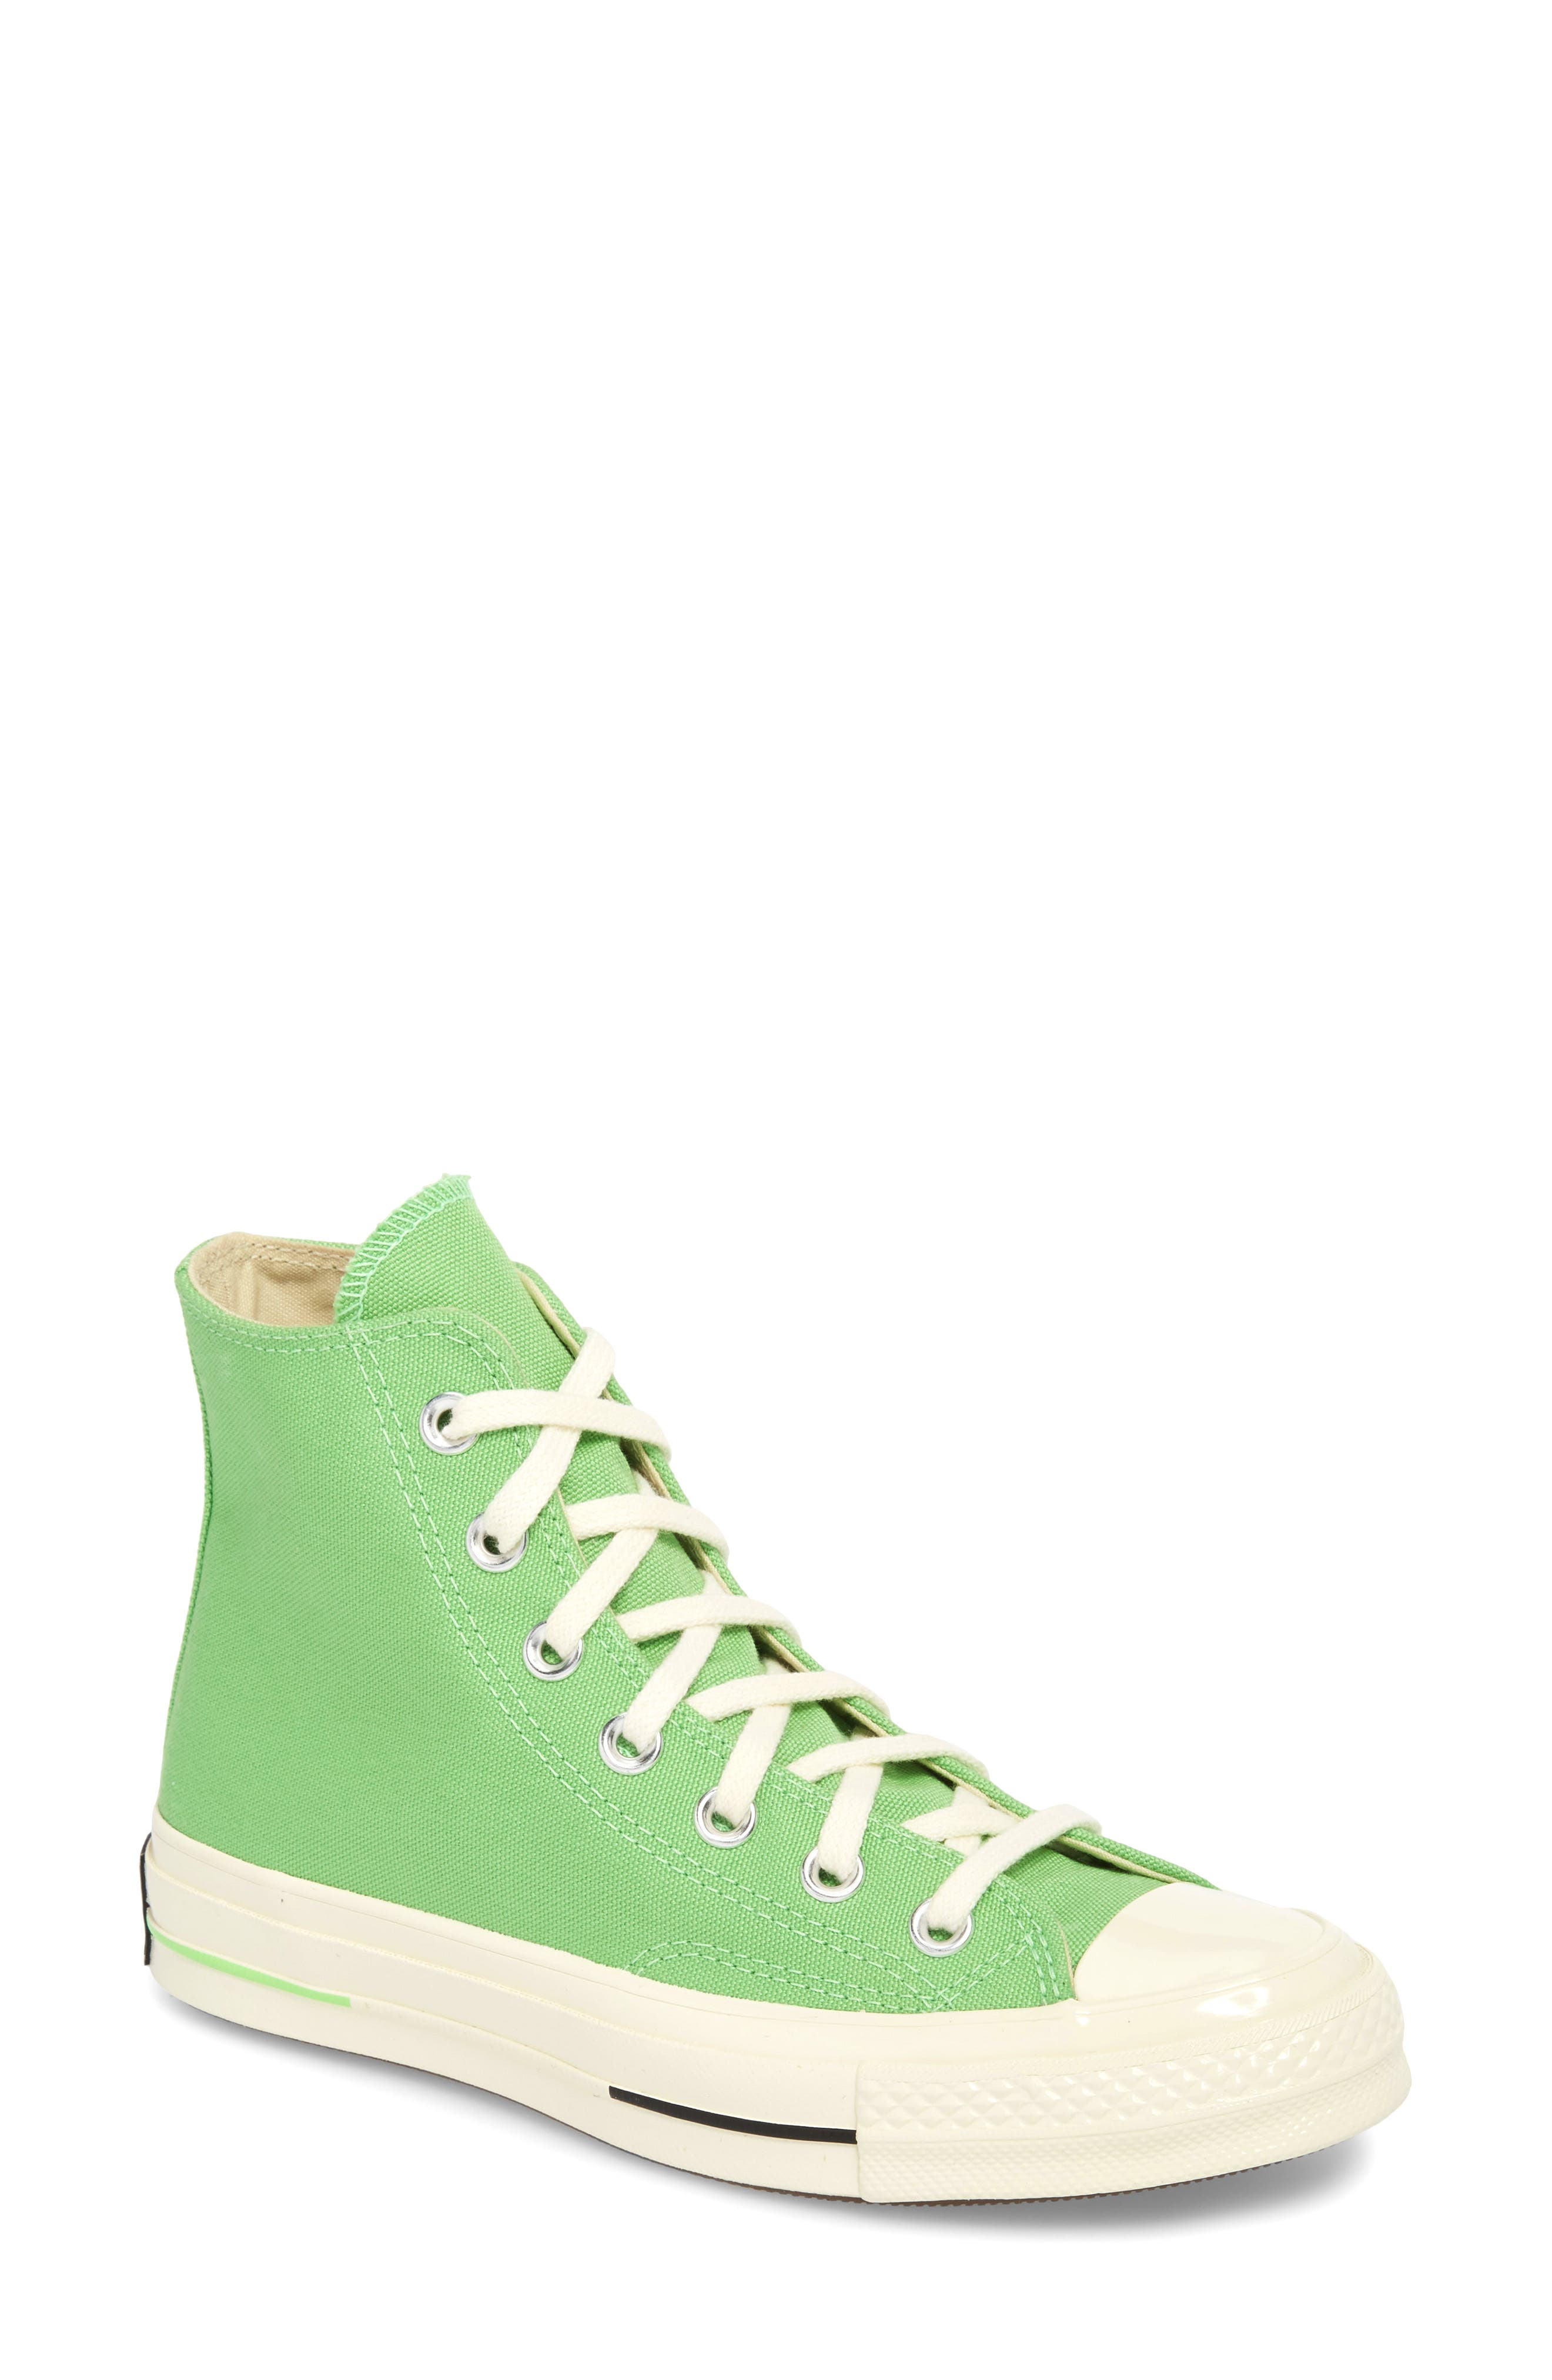 Chuck Taylor<sup>®</sup> All Star<sup>®</sup> 70 Brights High Top Sneaker,                         Main,                         color, 336